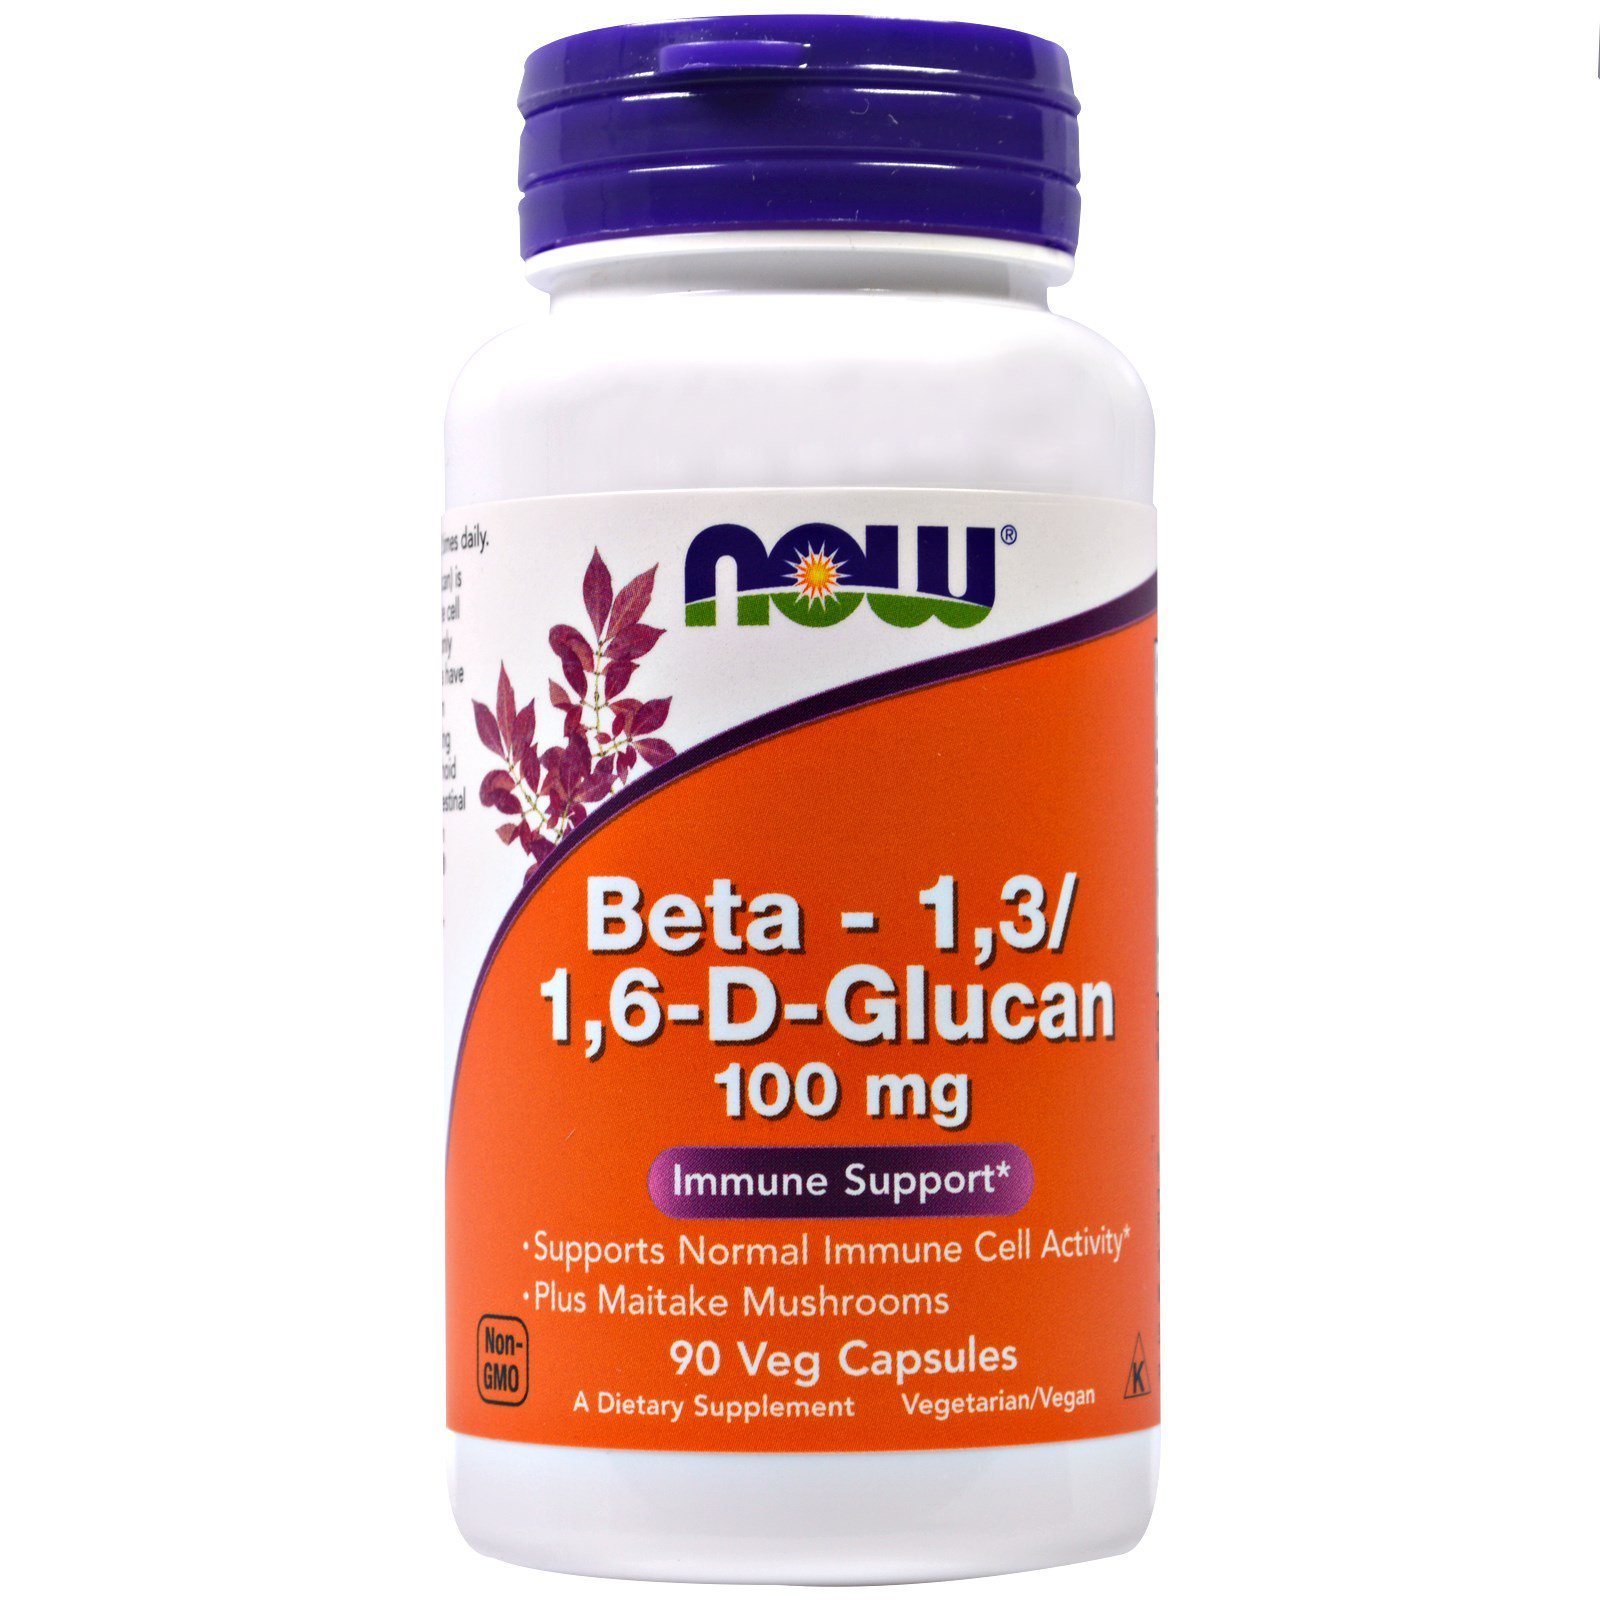 Бета глюкан, Beta-1,3 / 1,6-D-Glucan, Now Foods, 100 мг, 90 капсул